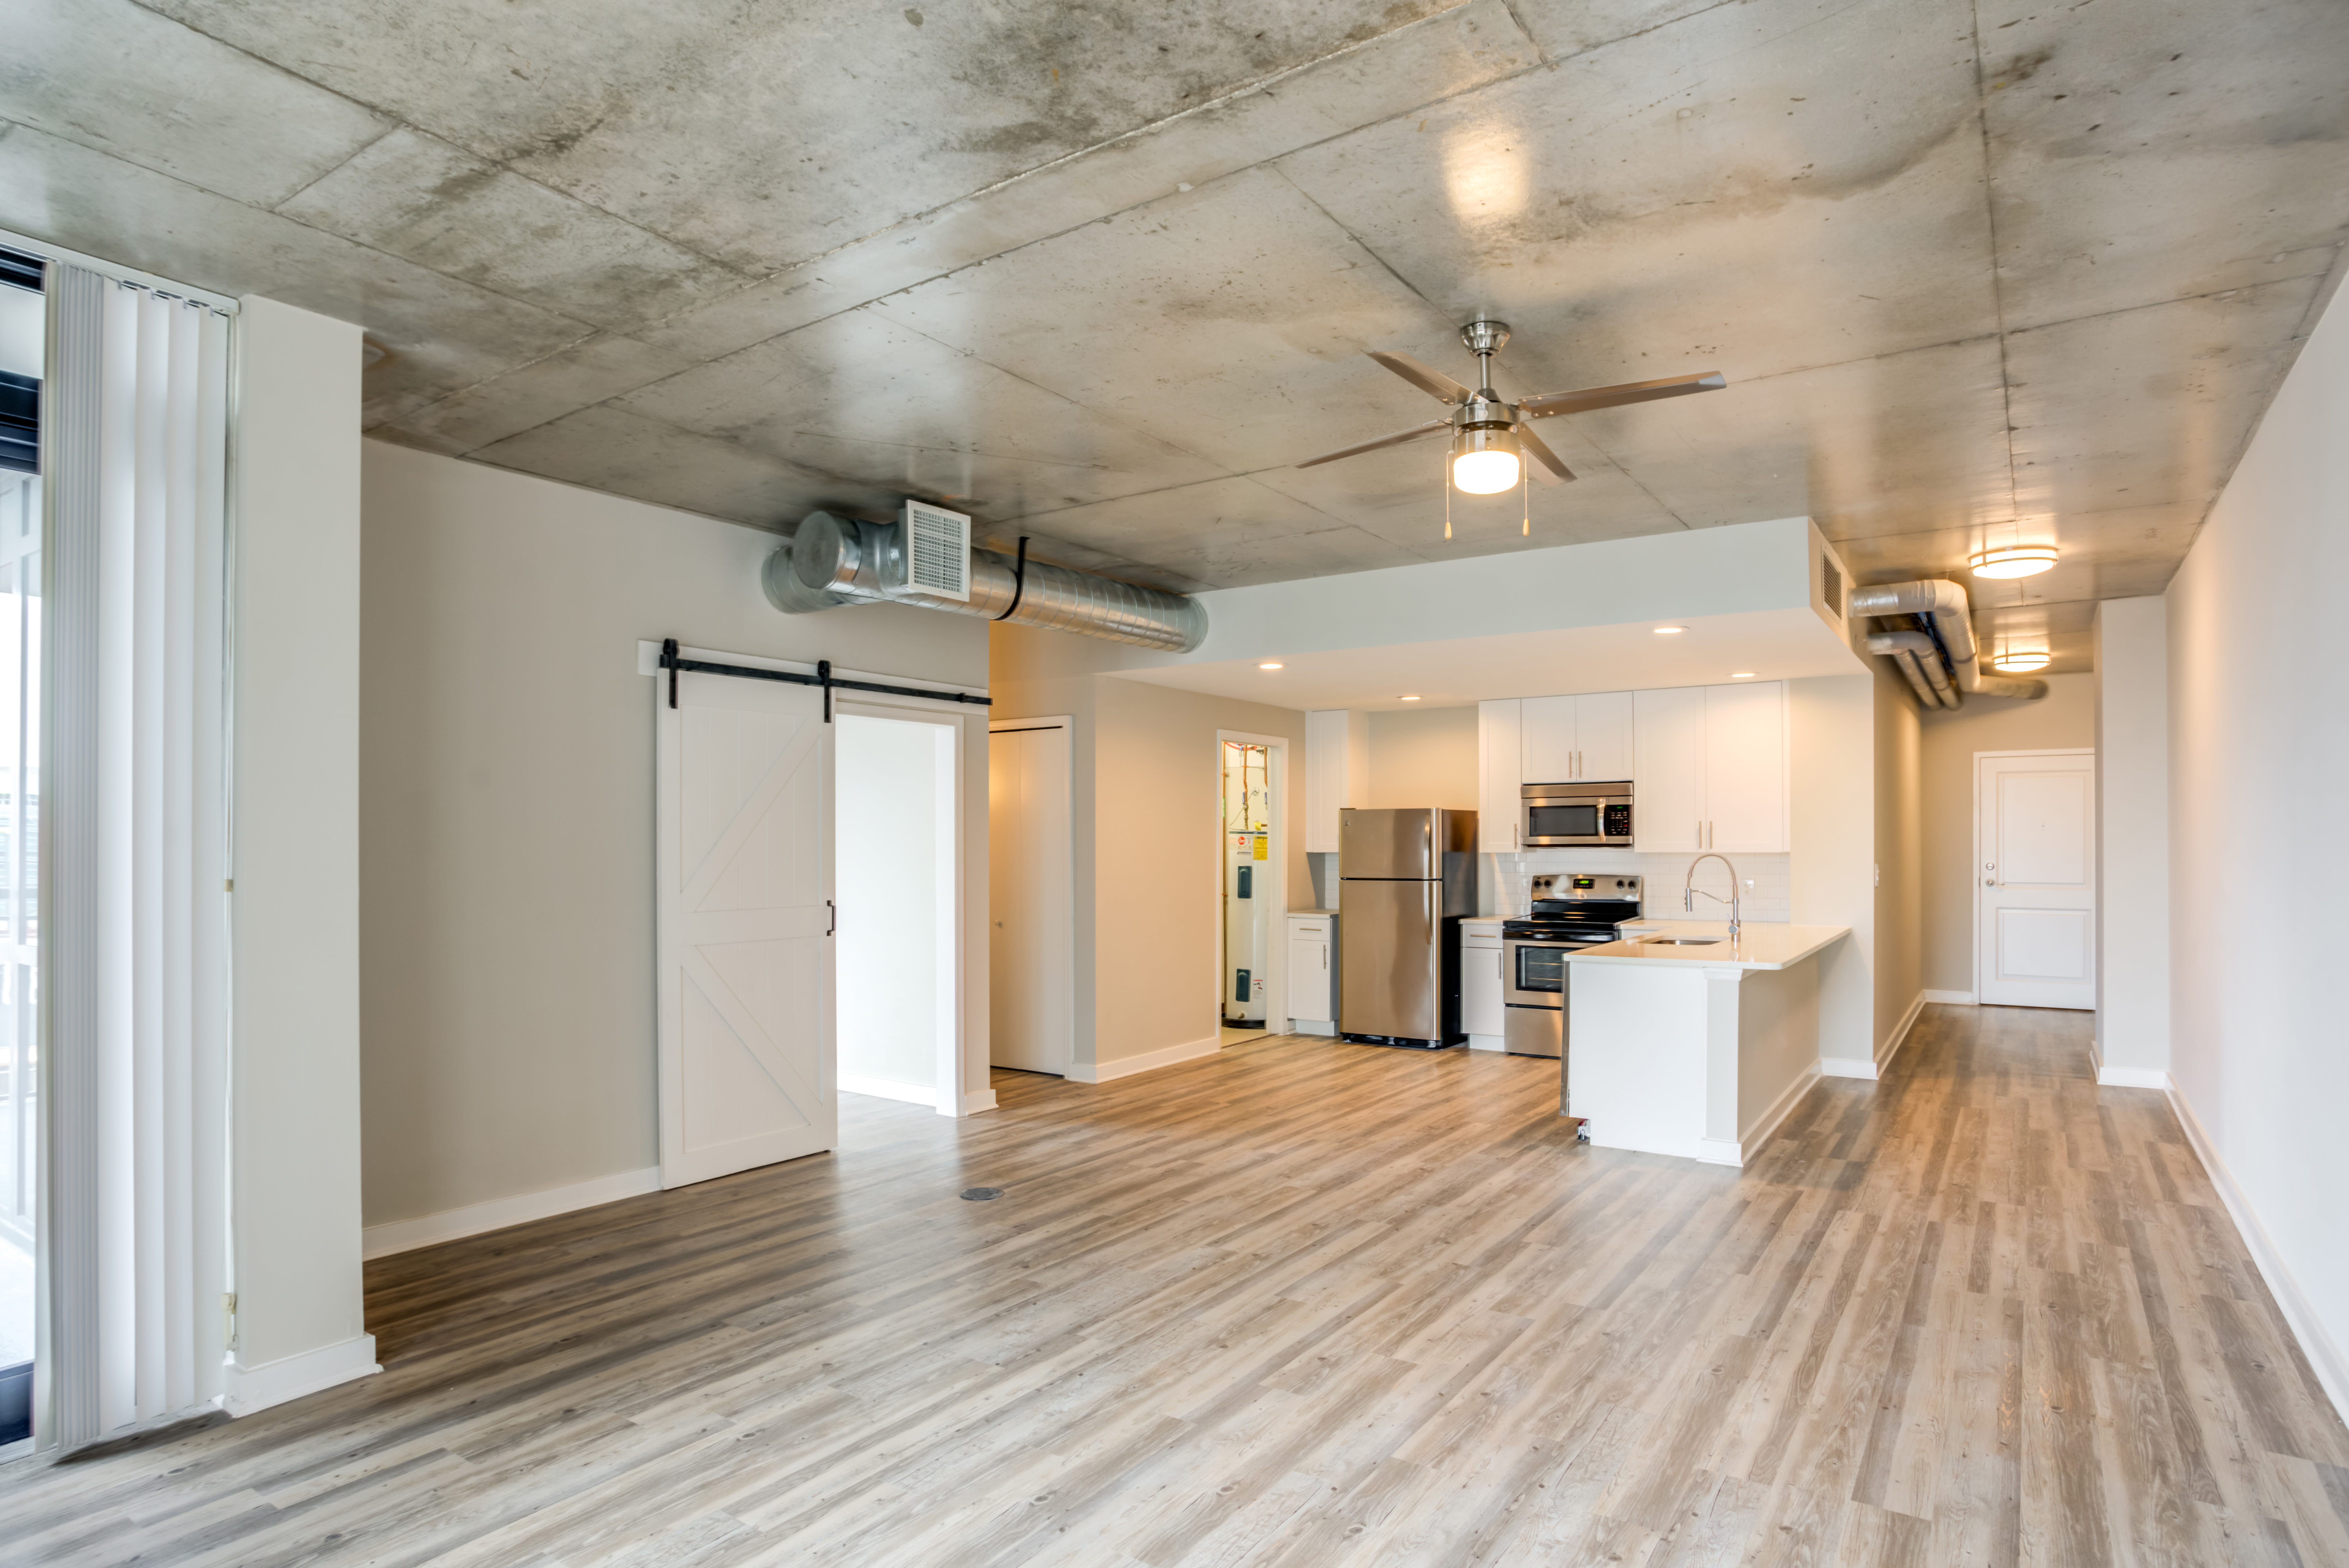 Spacious living room with hardwood floors and amazing views of city at 55 West Apartments in Orlando, Florida